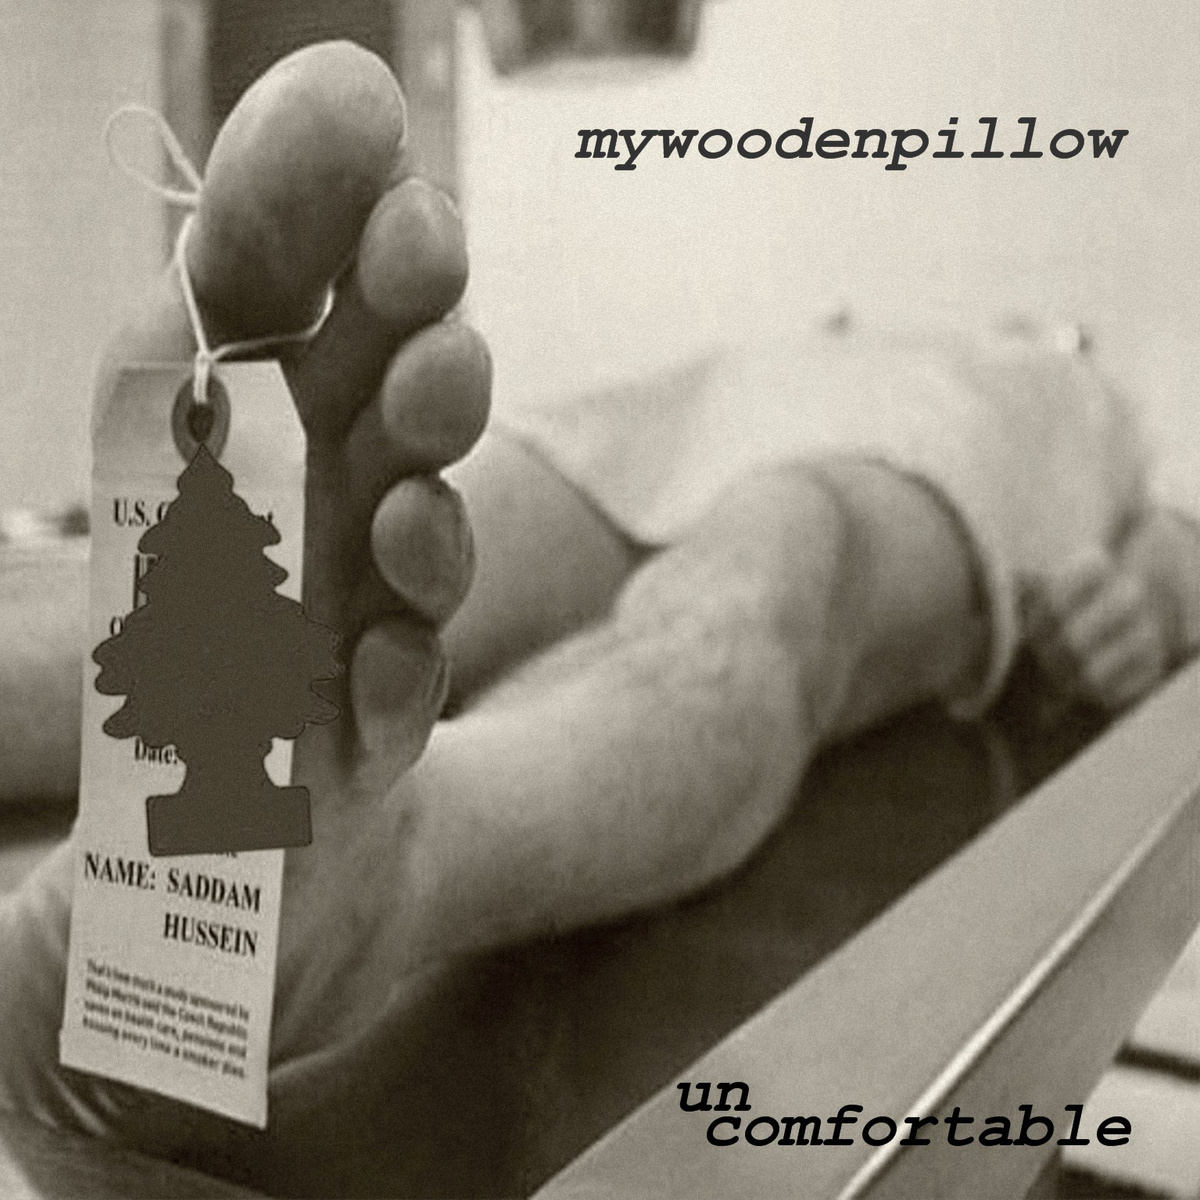 My Wooden Pillow – Uncomfortable EP